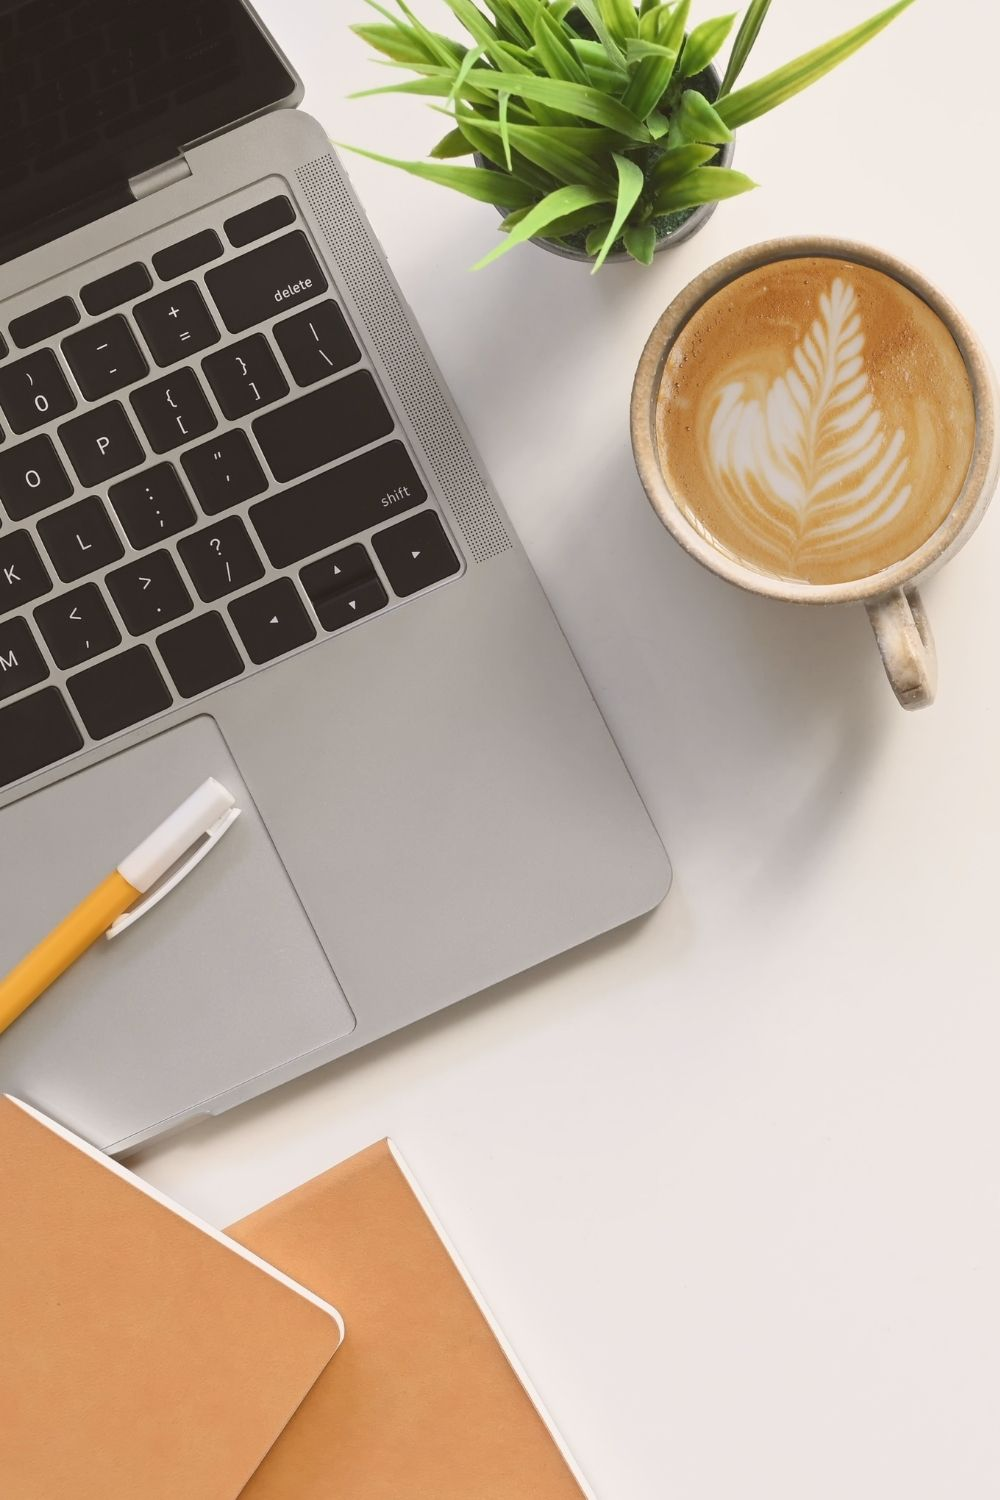 Business Tips Article with computer and coffee mug.